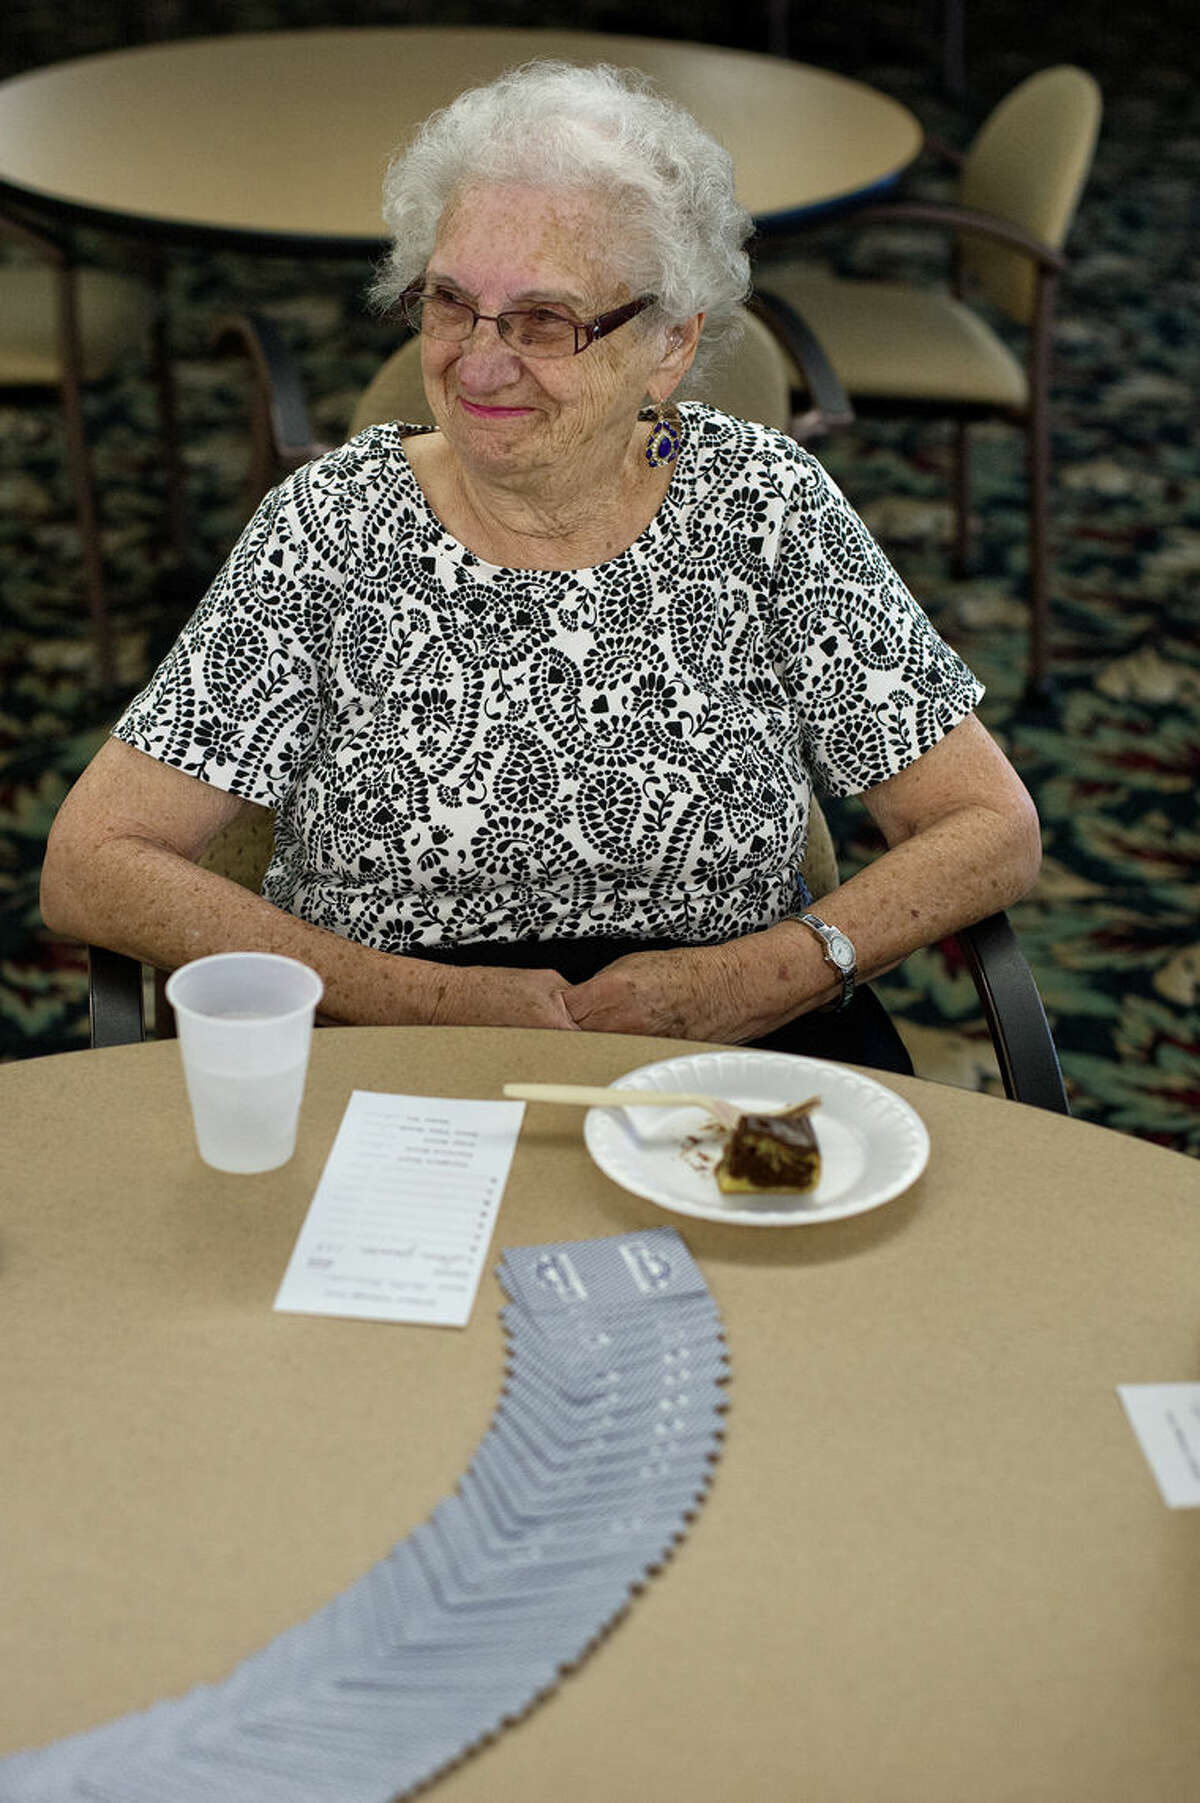 Ruth Emerson enjoys a piece of cake while waiting for her next cribbage match in the dining room at Washington Woods.